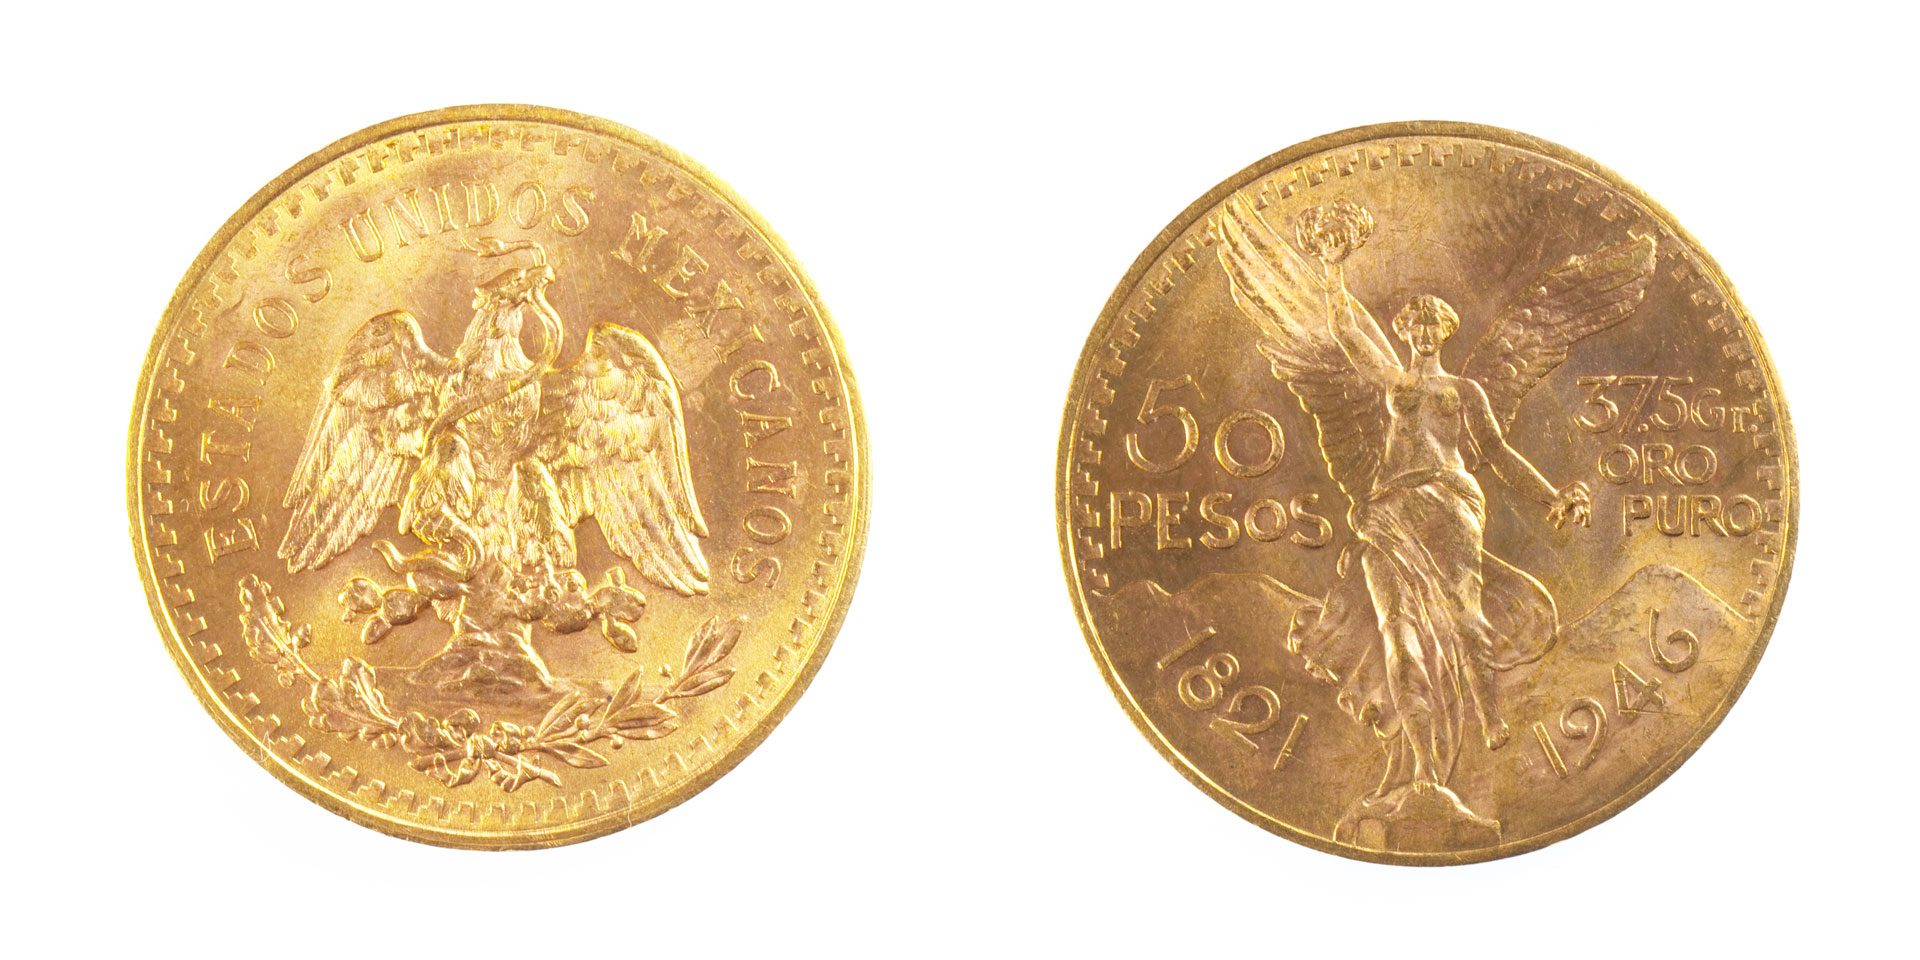 50 pesos Mexican gold coin, front and back